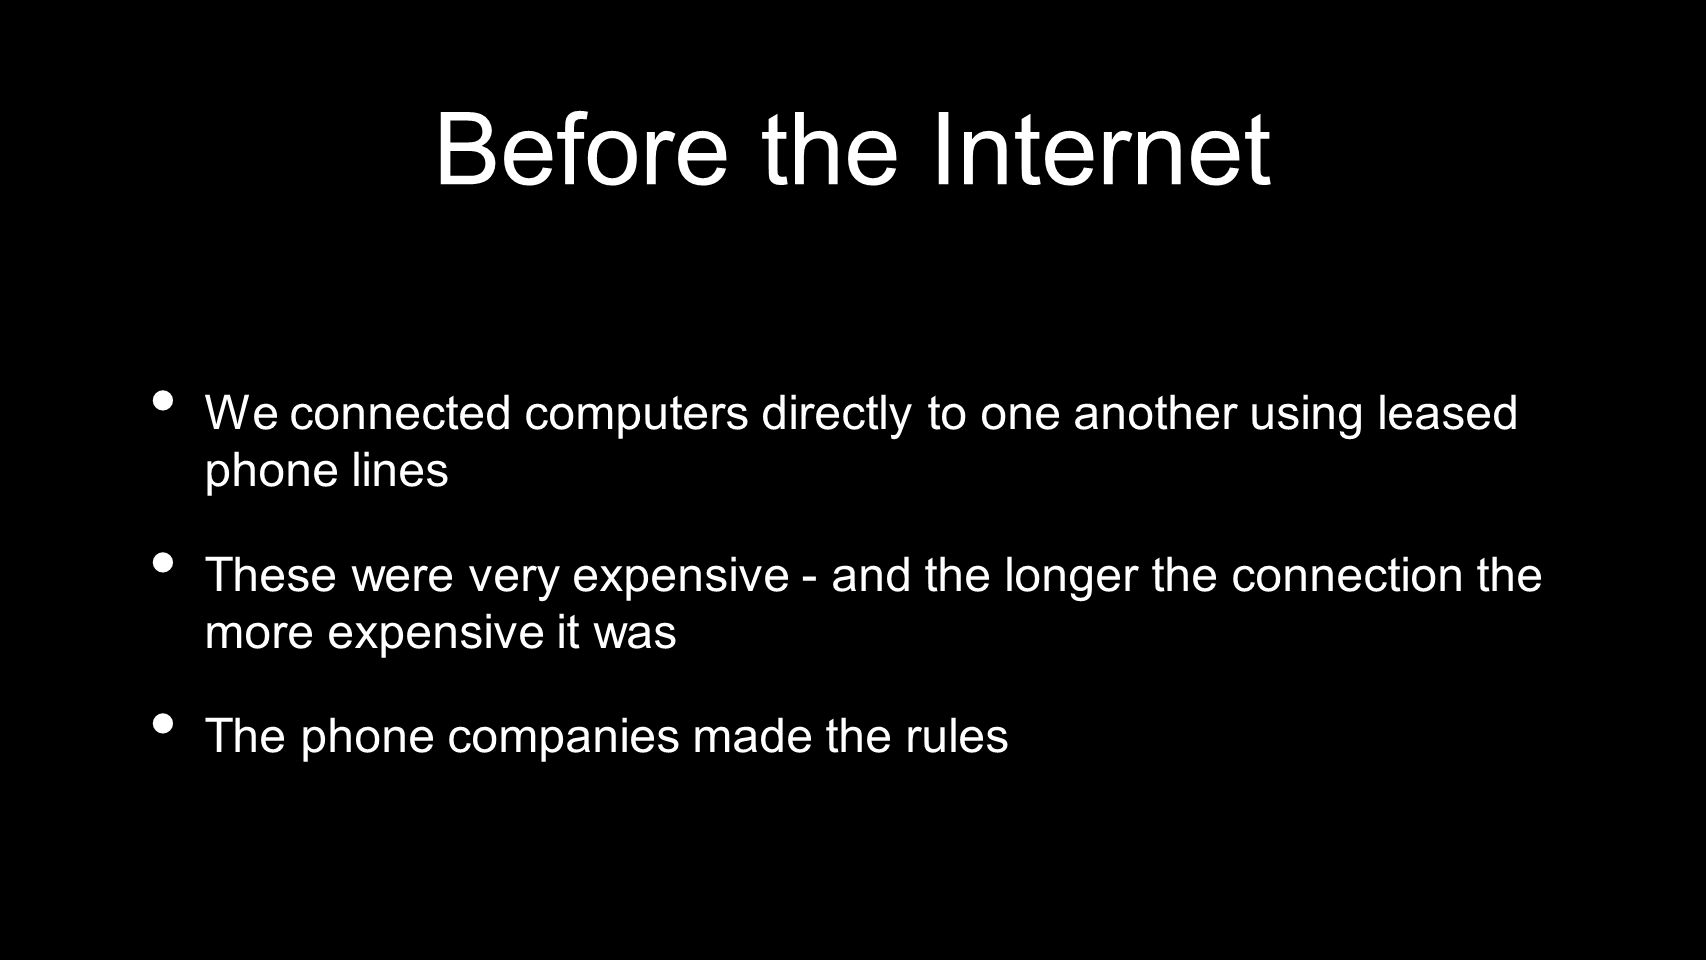 Before the Internet We connected computers directly to one another using leased phone lines.